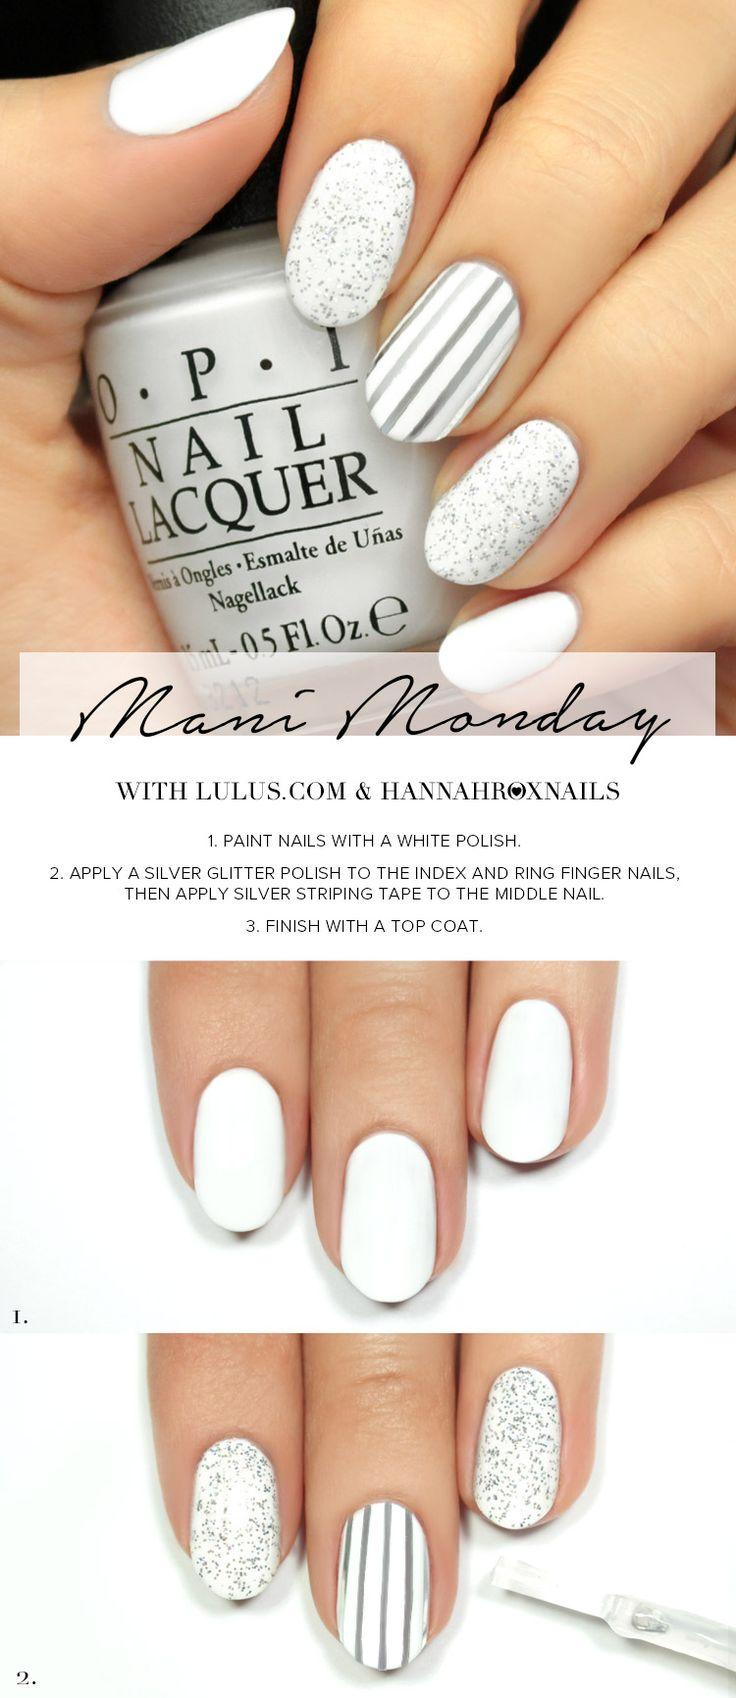 Mani Monday: Silver and White Glitter Nail Tutorial at LuLus.com!